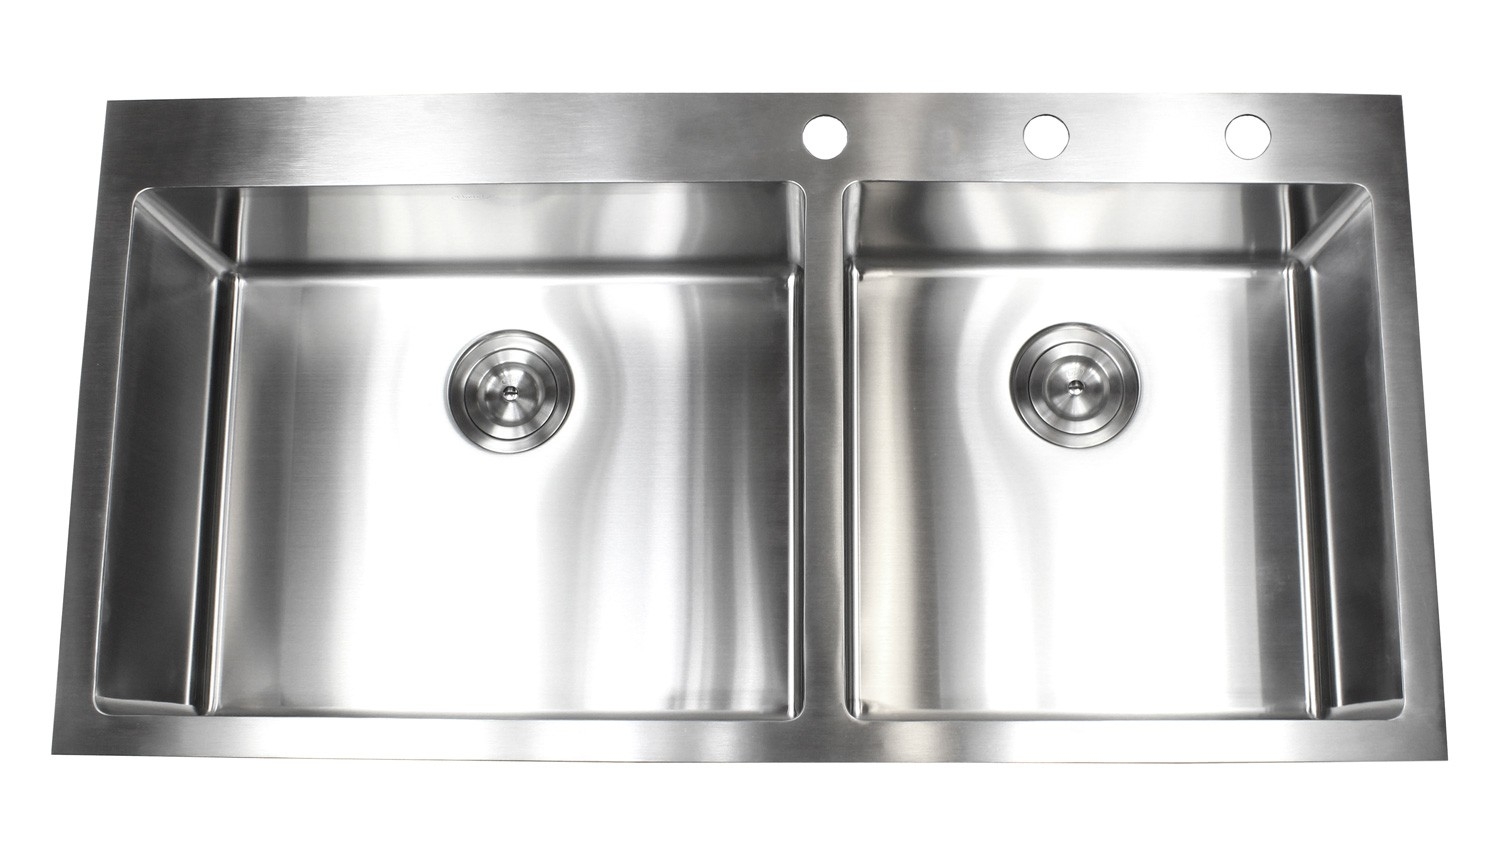 Medium image of 43 inch drop in stainless steel double bowl kitchen sink 15mm radius design